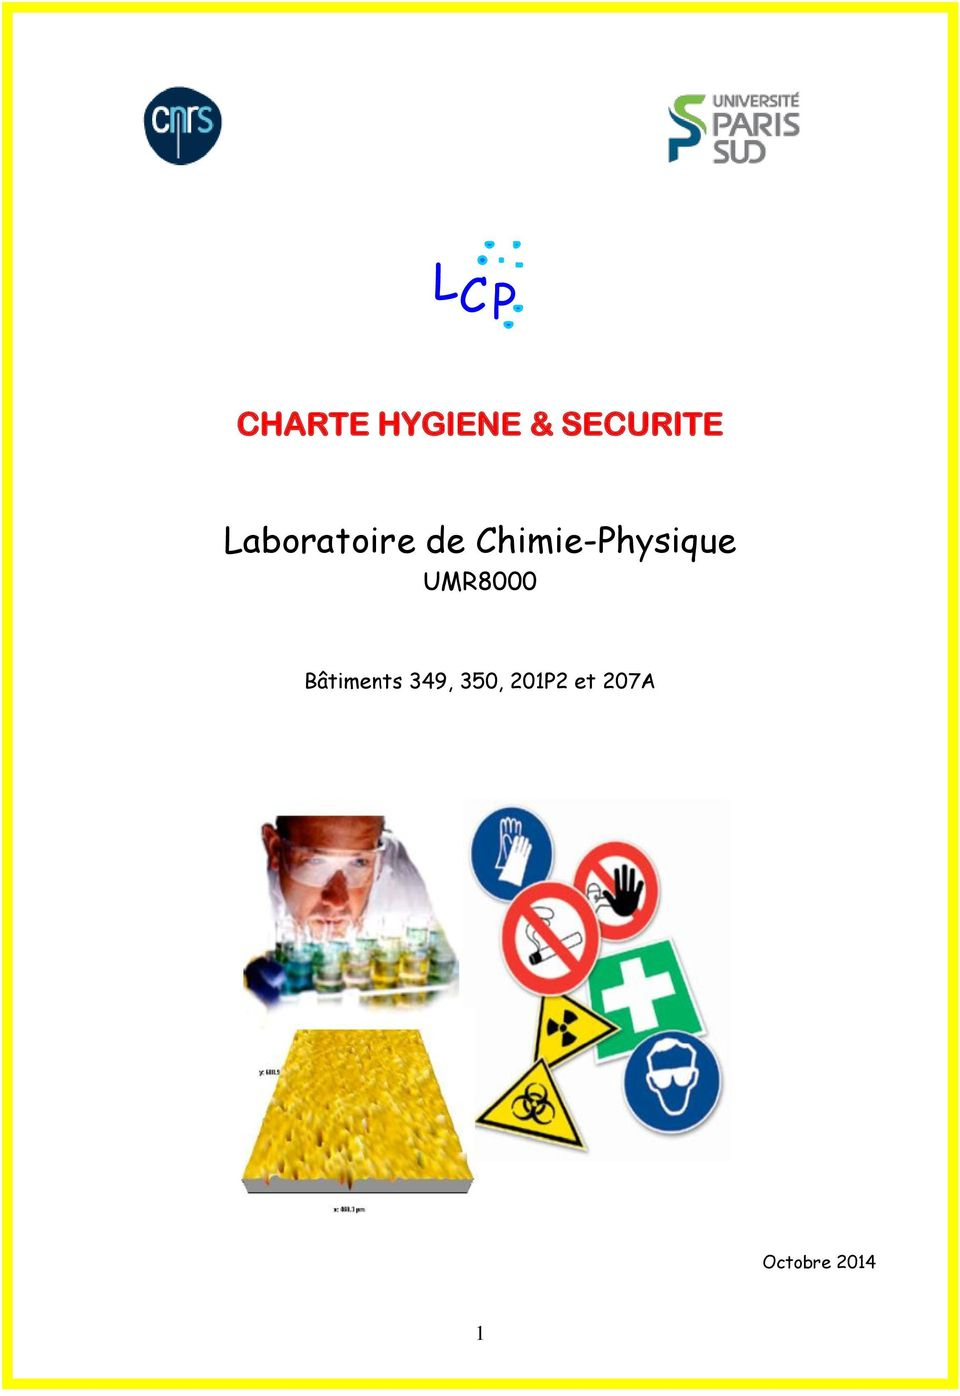 Chimie-Physique UMR8000